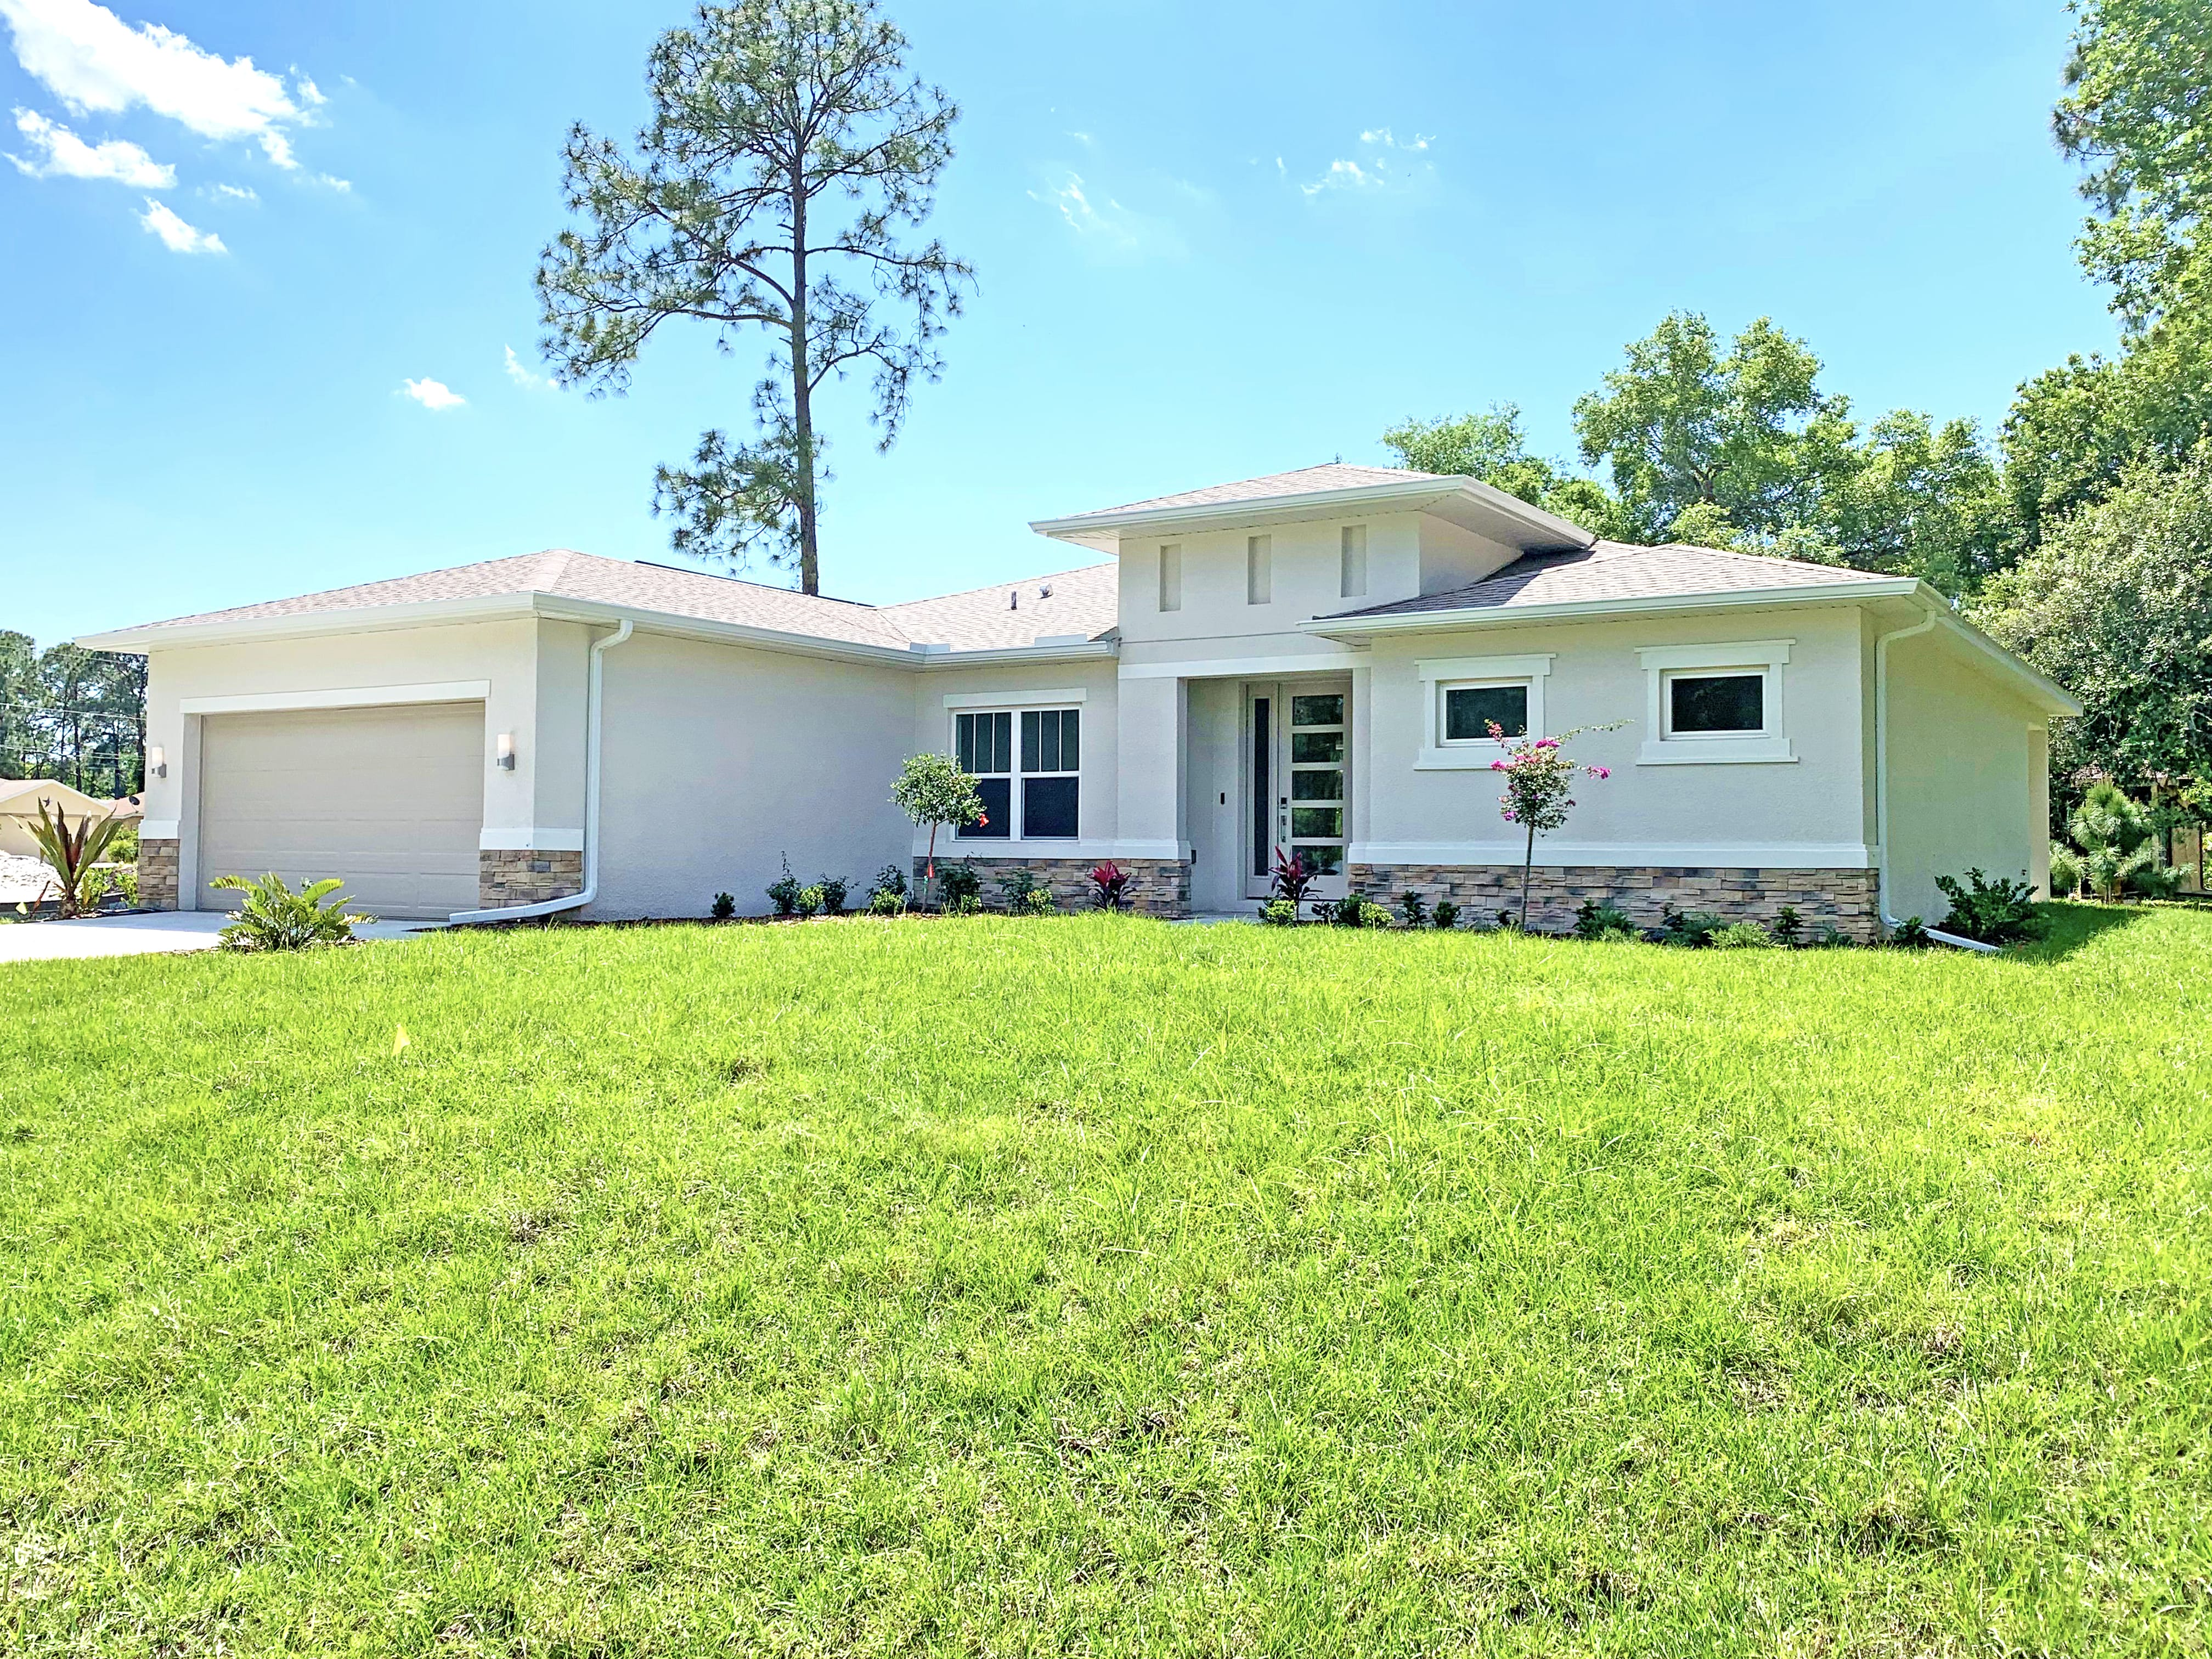 home for sale by owner in palm bay